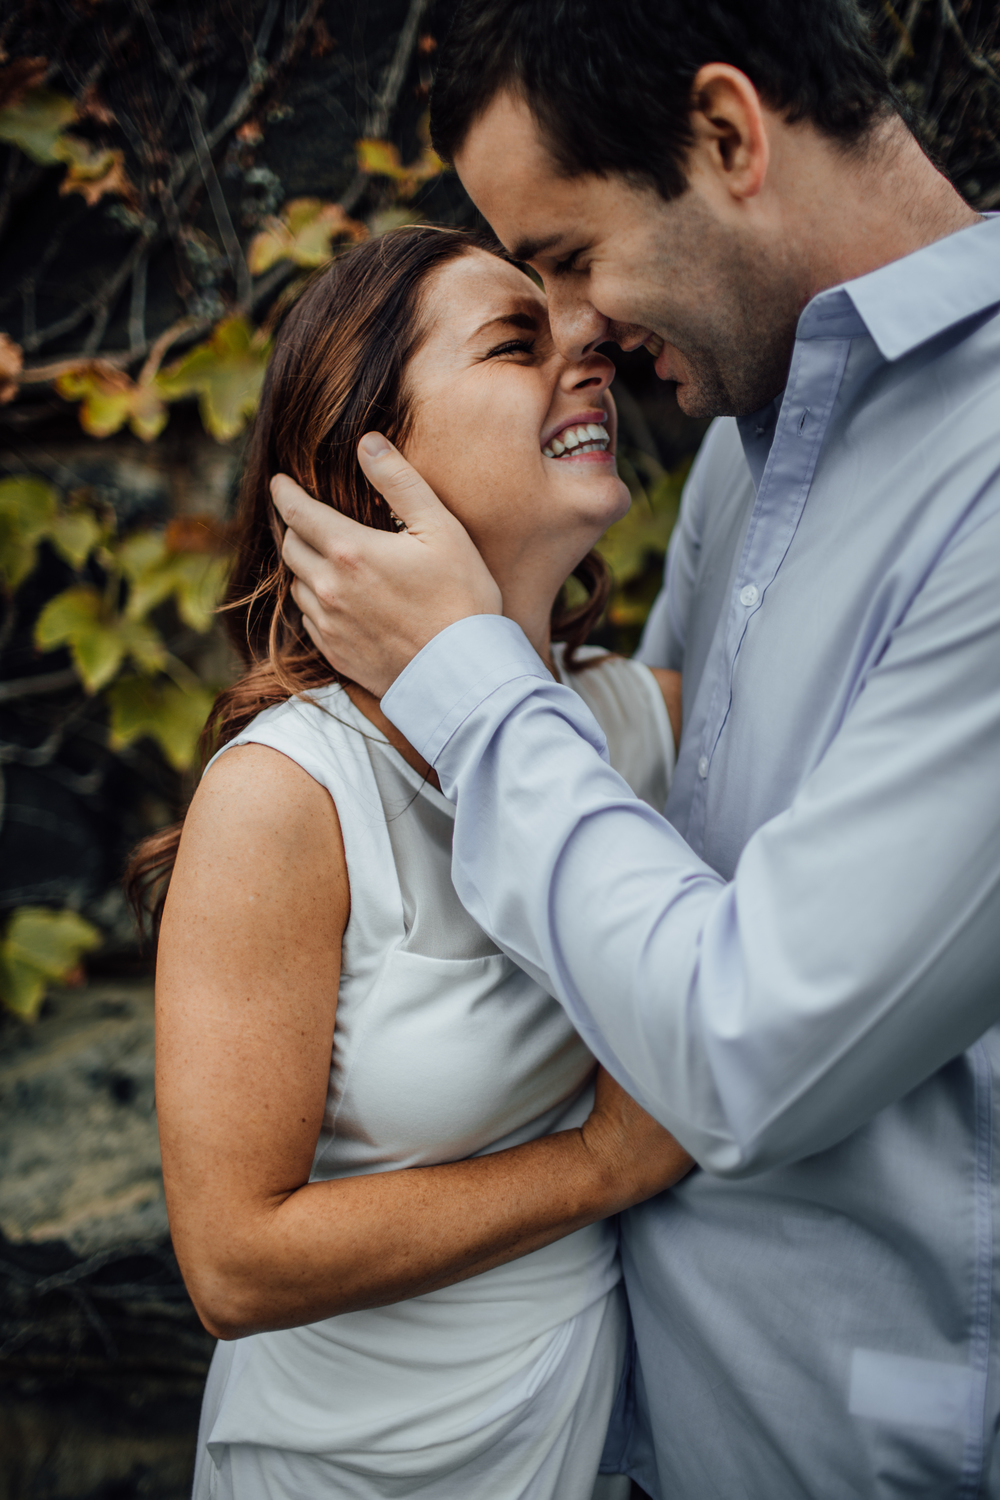 BRITTANYandKEVIN-Engagement2015 (68 of 115).jpg